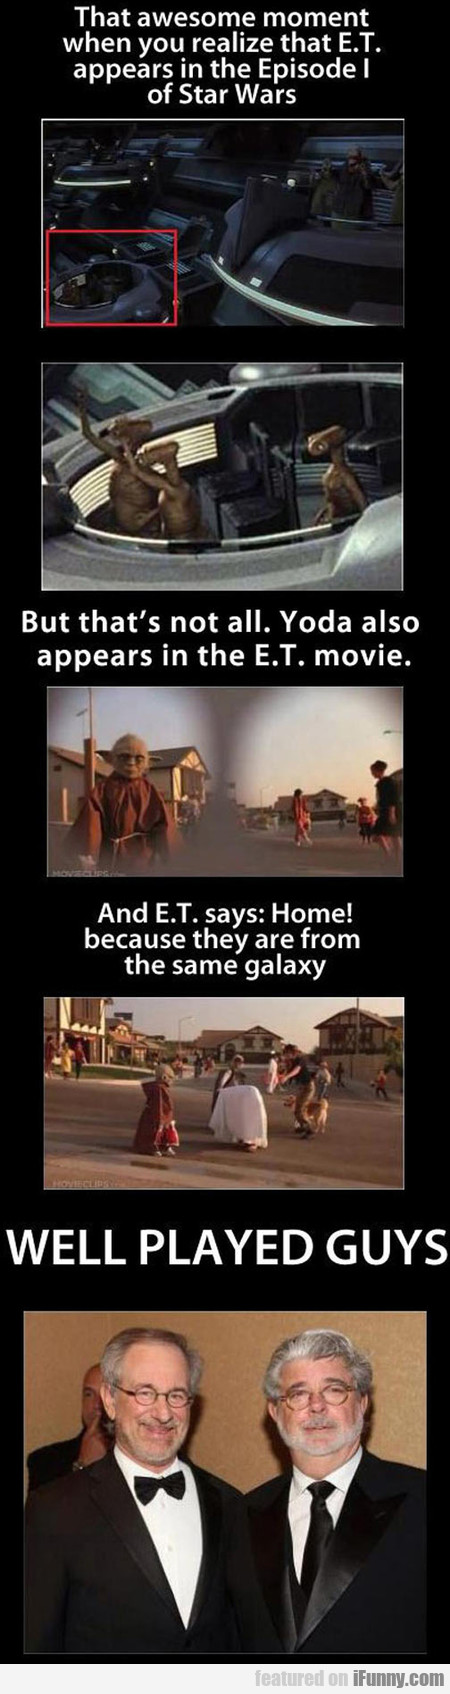 That Awesome Moment When You Realize That E.t.